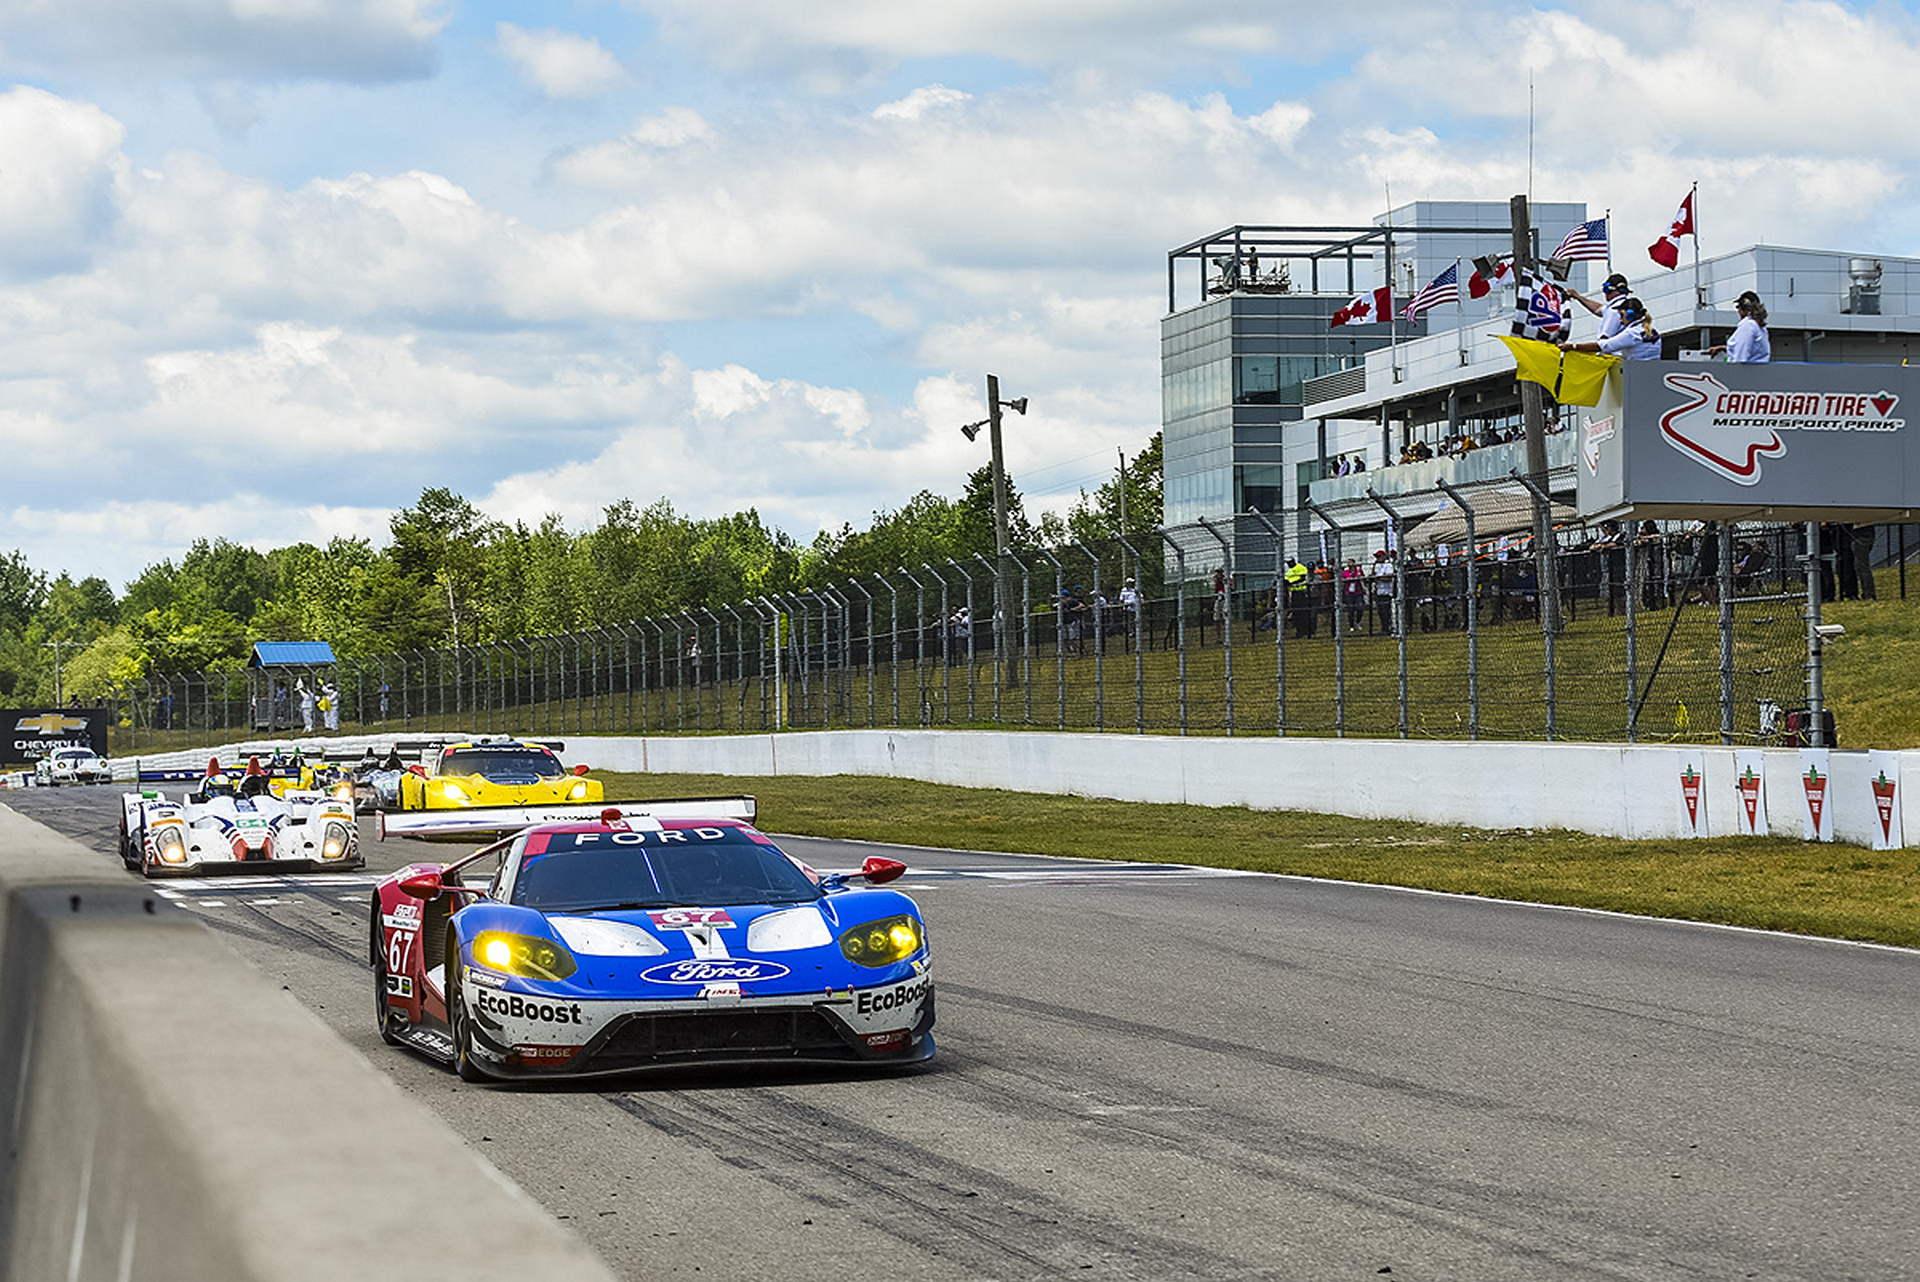 Two Wins in Two Weeks for Ford Chip Ganassi Racing © Ford Motor Company